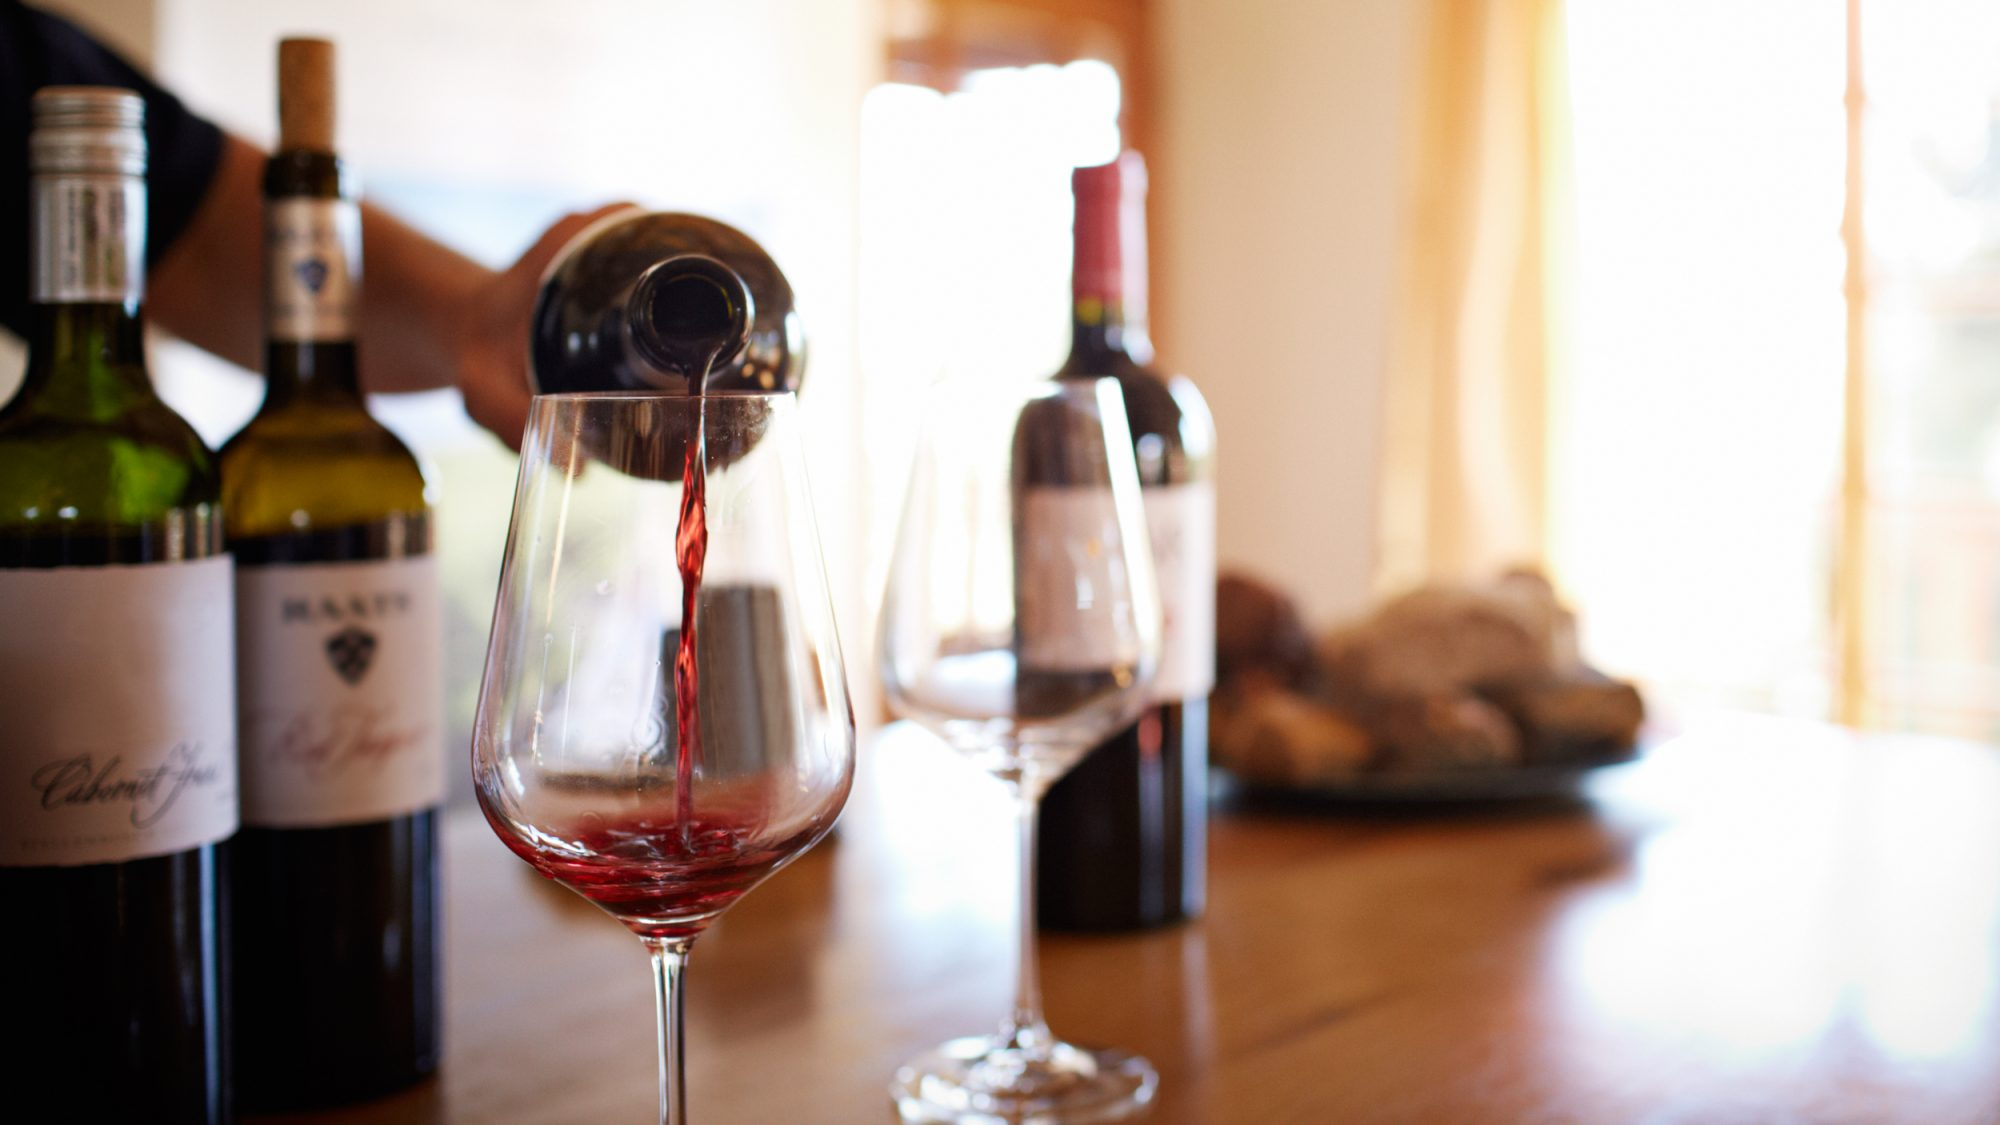 How to Host a Wine Tasting Without Thinking Too Much